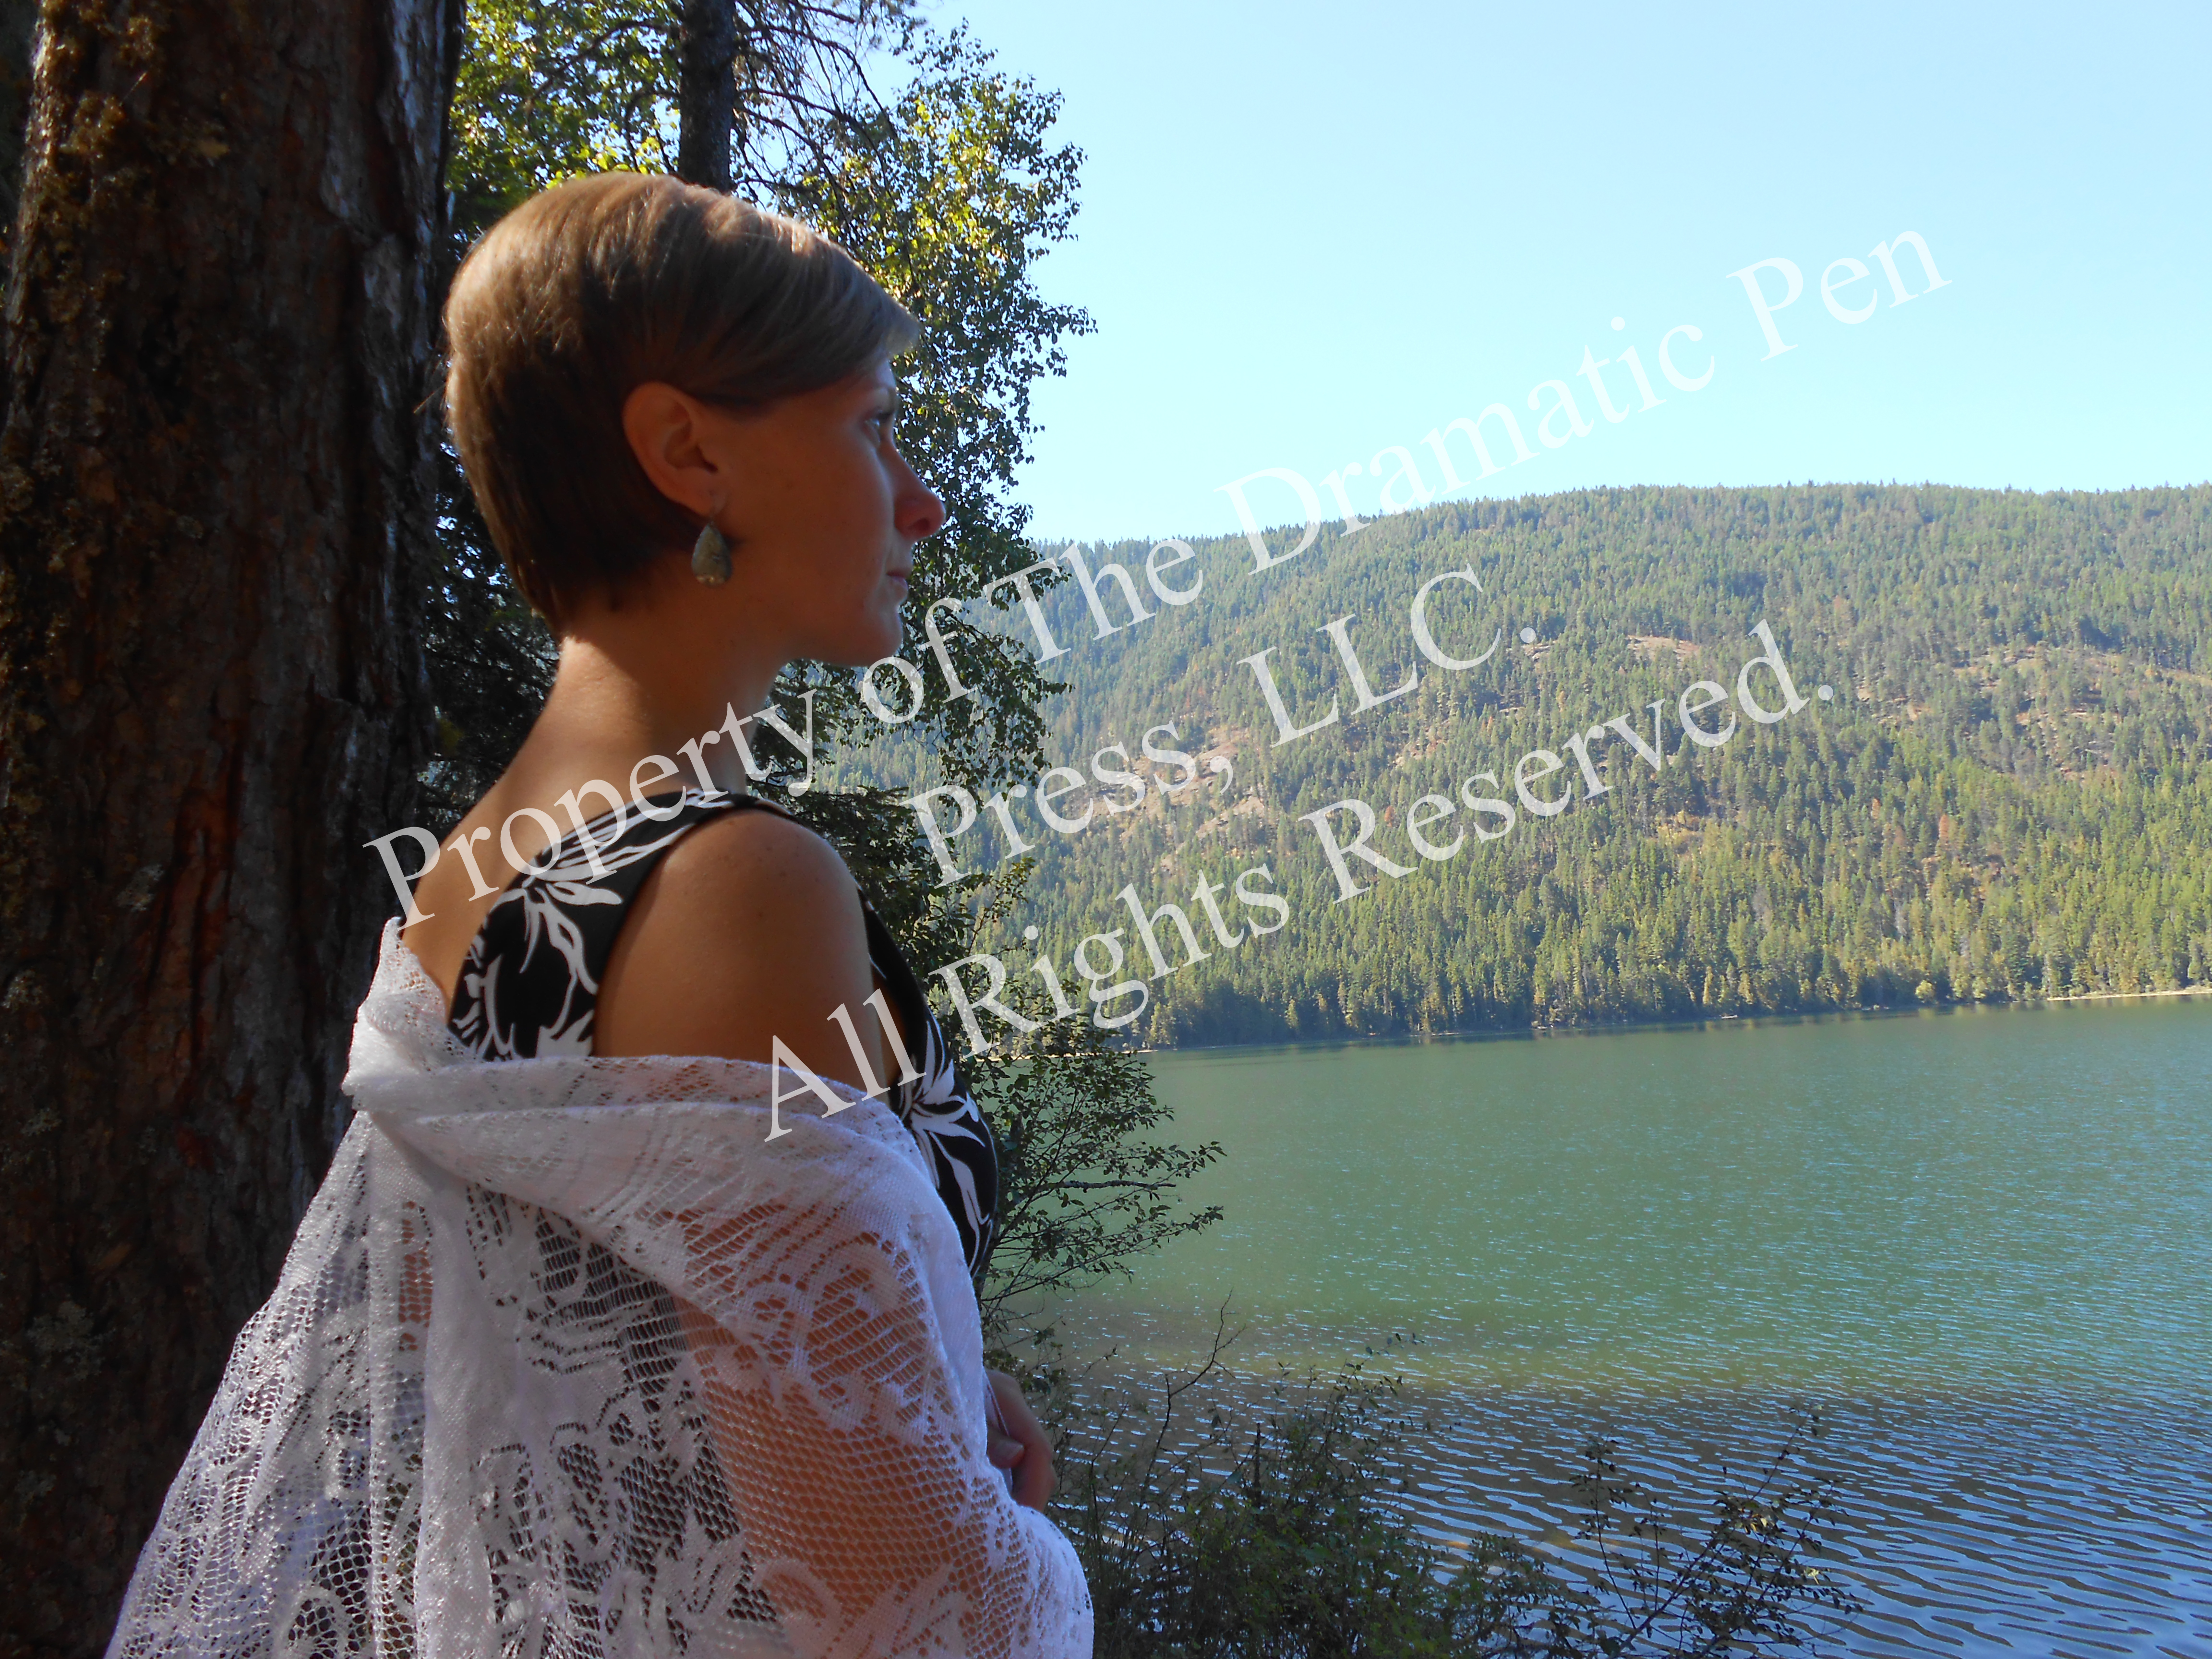 Lonely Woman with Lace by Lake